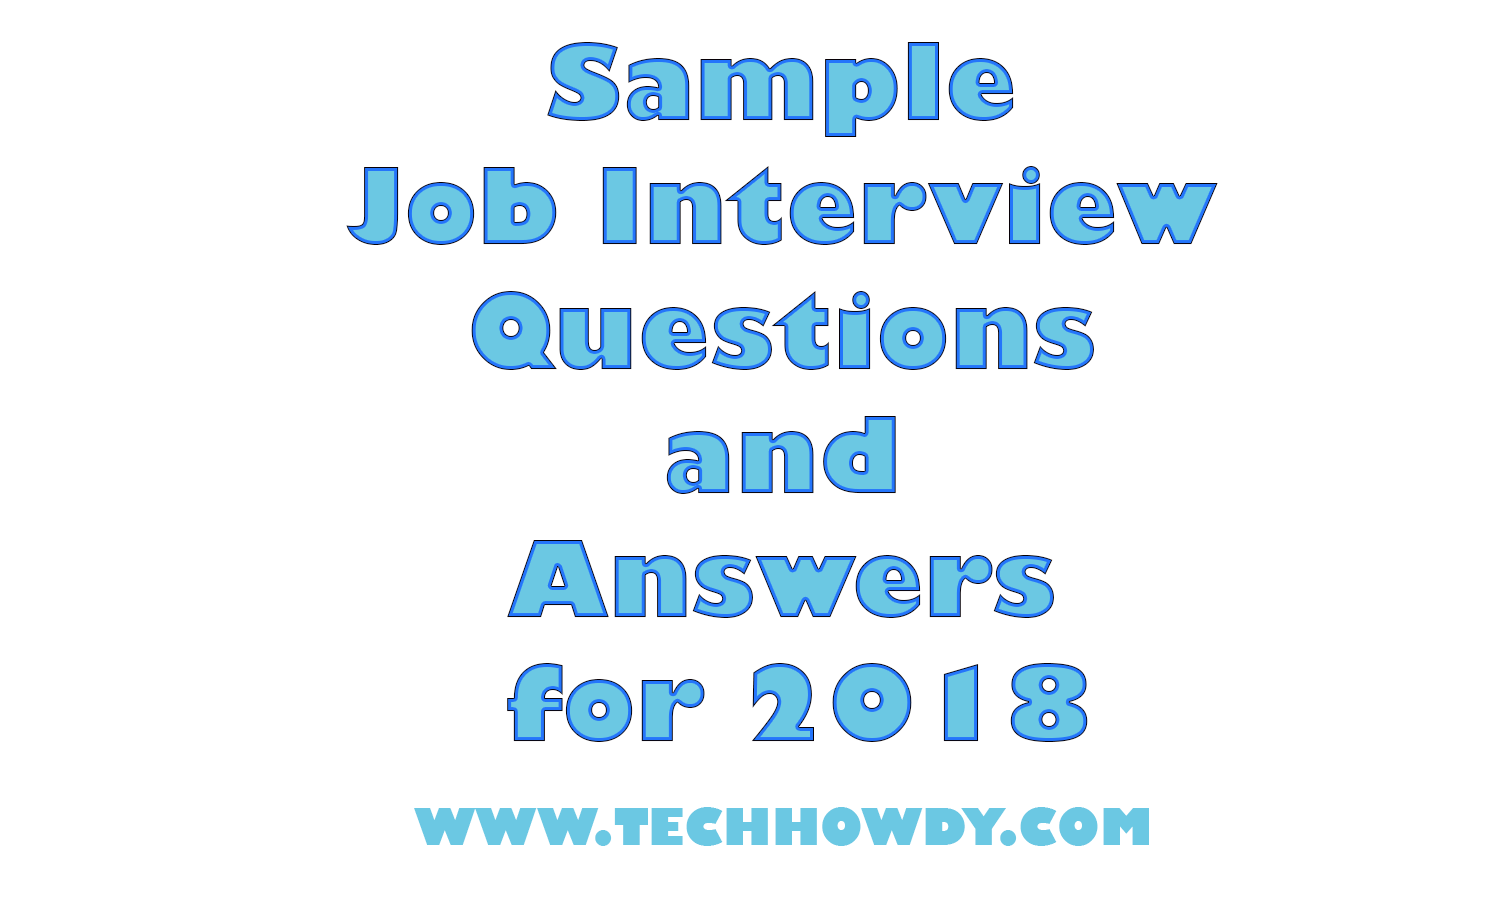 Sample Job Interview Questions And Answers For 2018